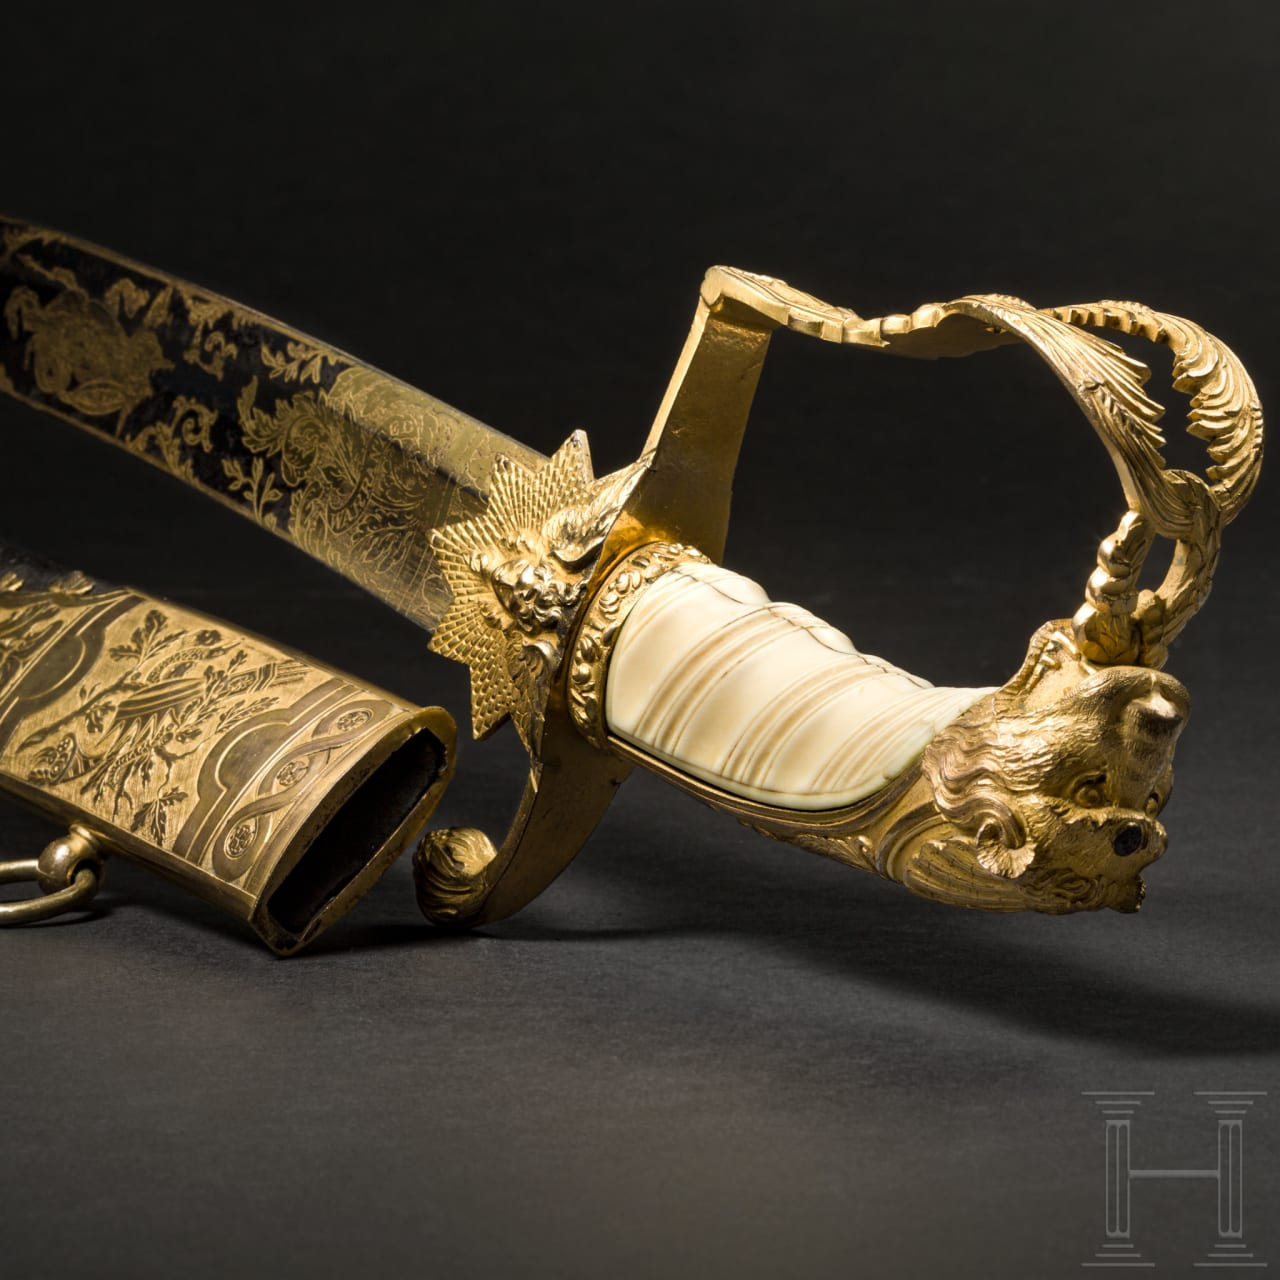 A significant ceremonial sabre - presented to Major David Ogilvy by the Brechin Volunteer Infantry Corps, 1808